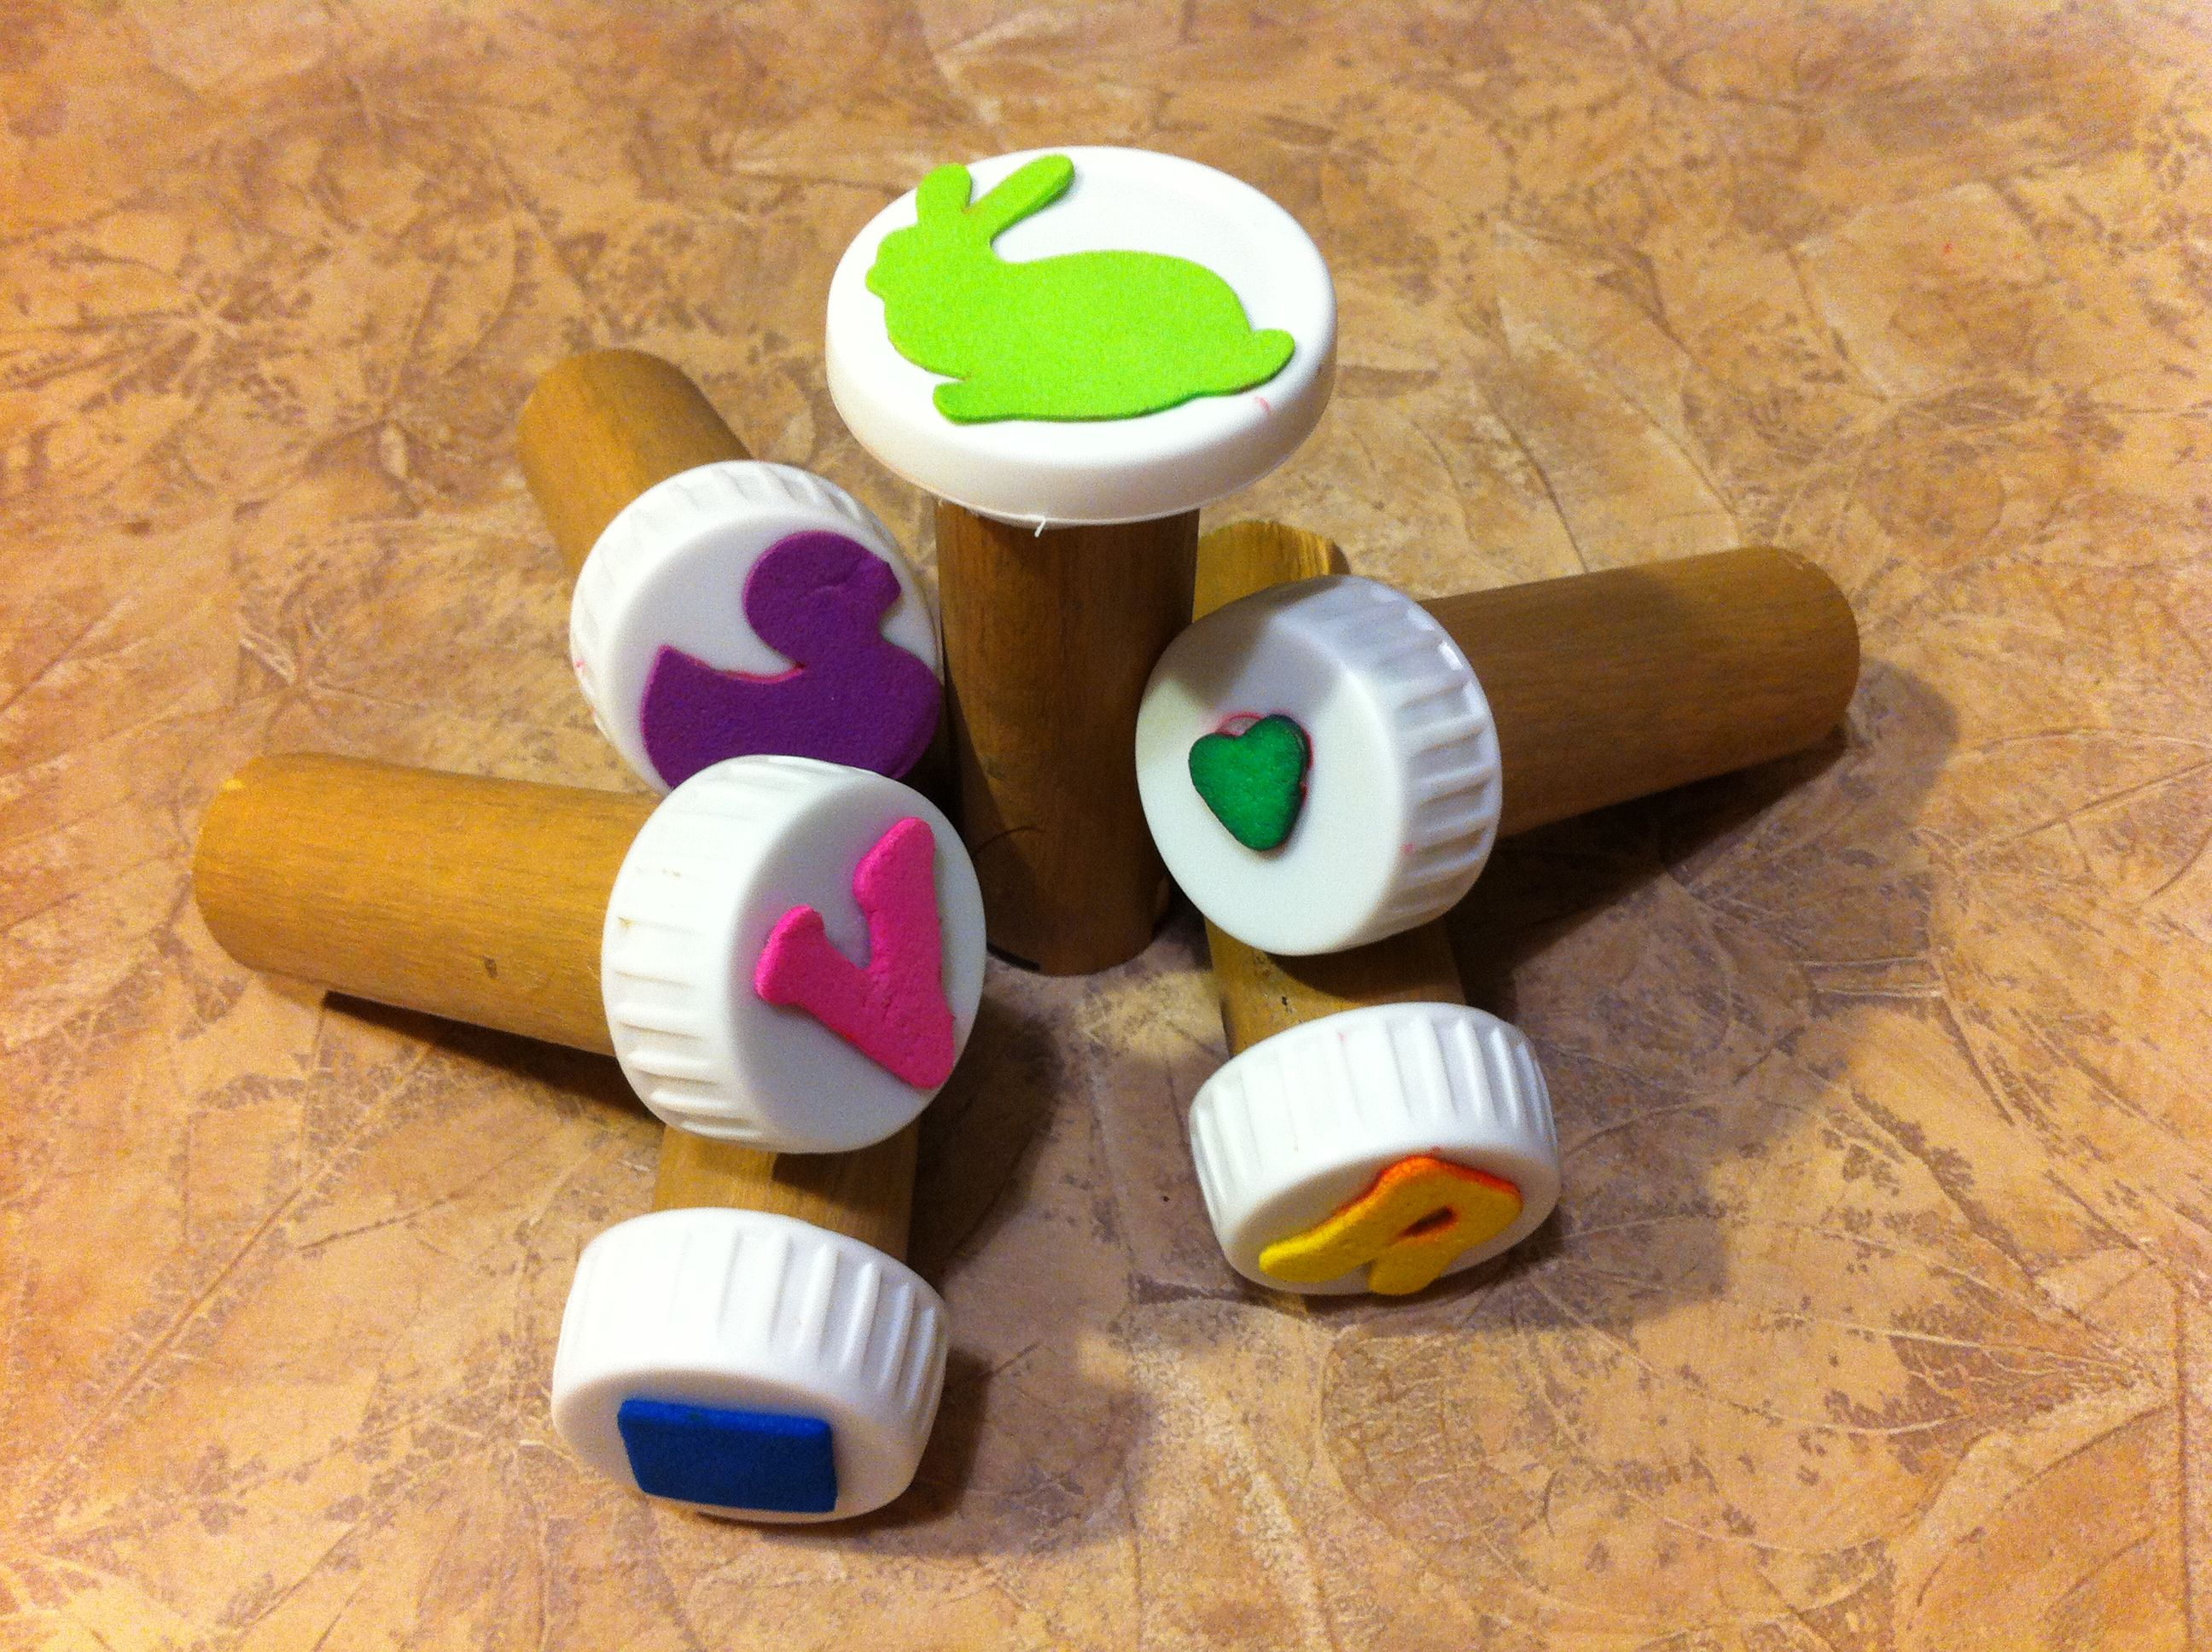 Make Stampers For The Kids Using Soda Bottle Tops And Foam